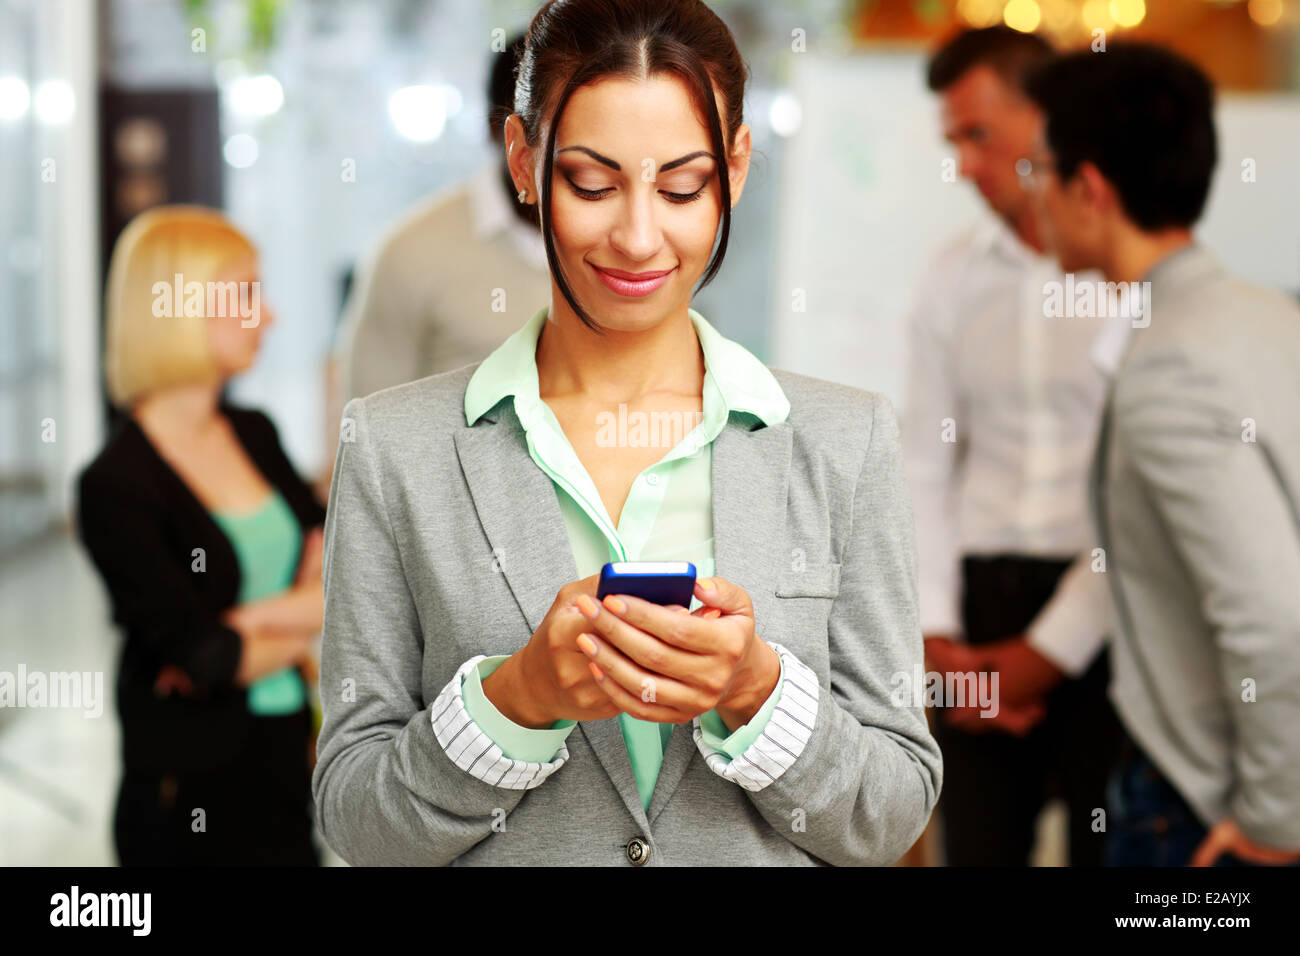 Portrait of a happy businesswoman using smartphone in front of colleagues - Stock Image